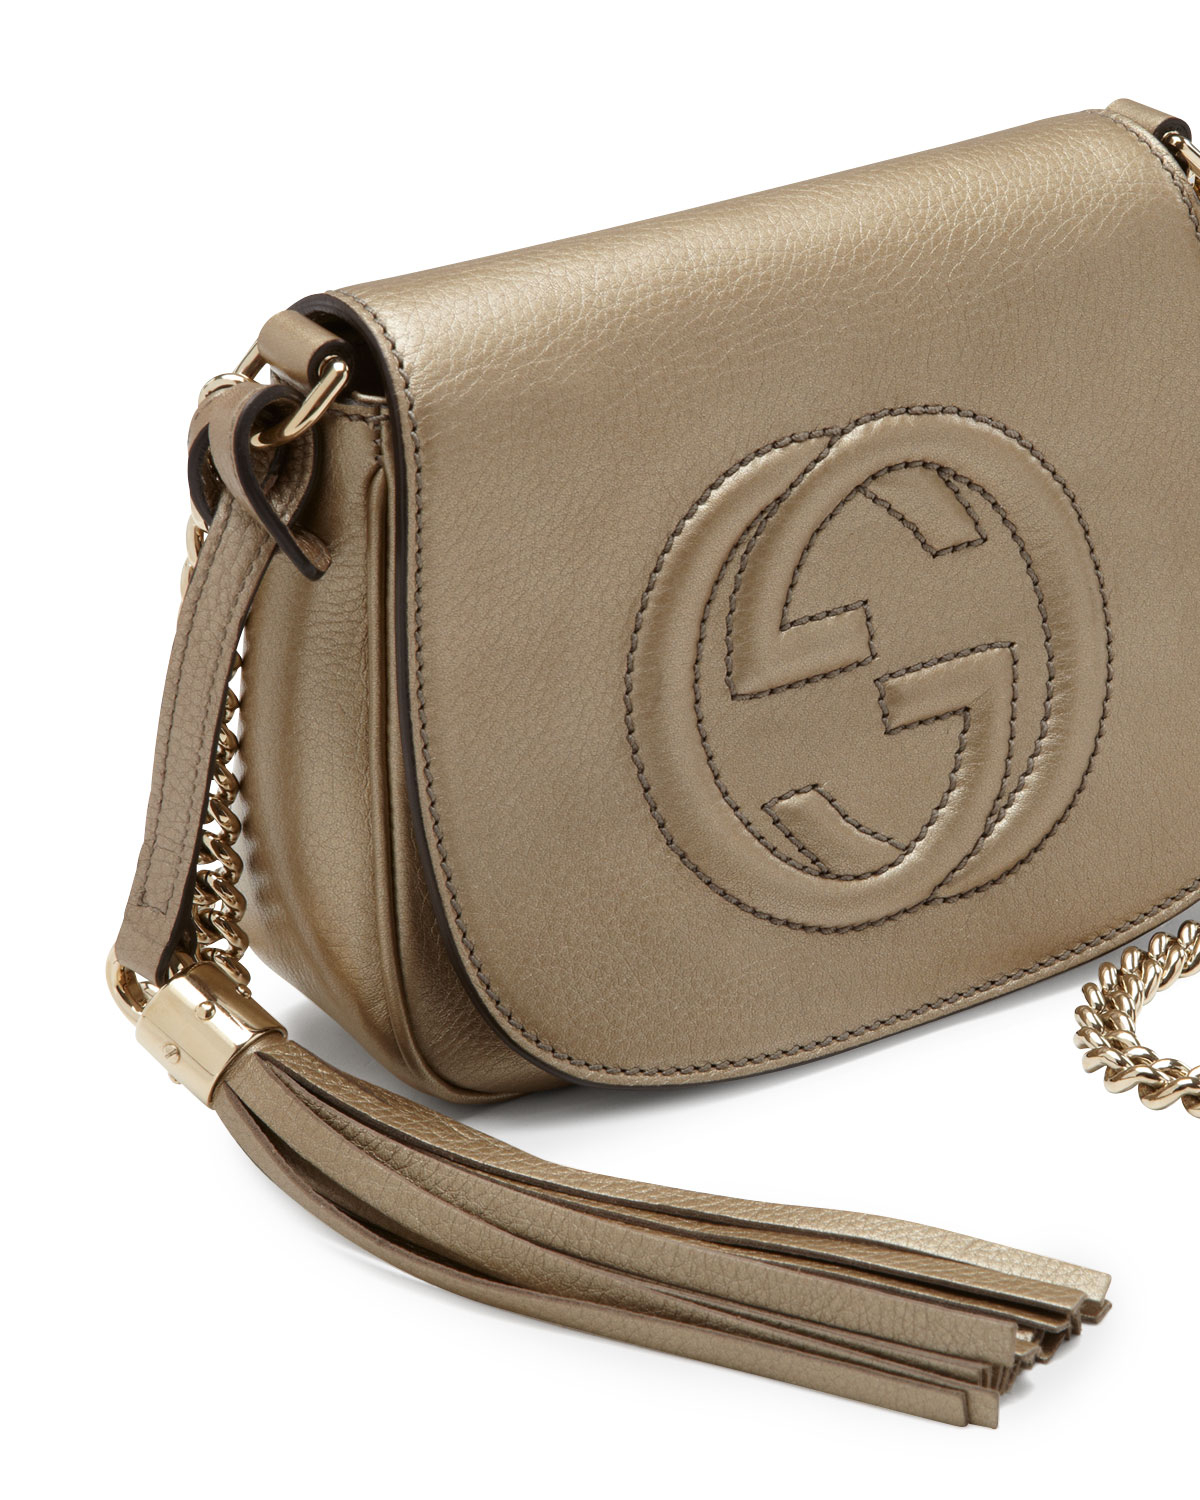 9a6ba8d81 Gallery. Previously sold at: Bergdorf Goodman · Women's Gucci Soho Bags